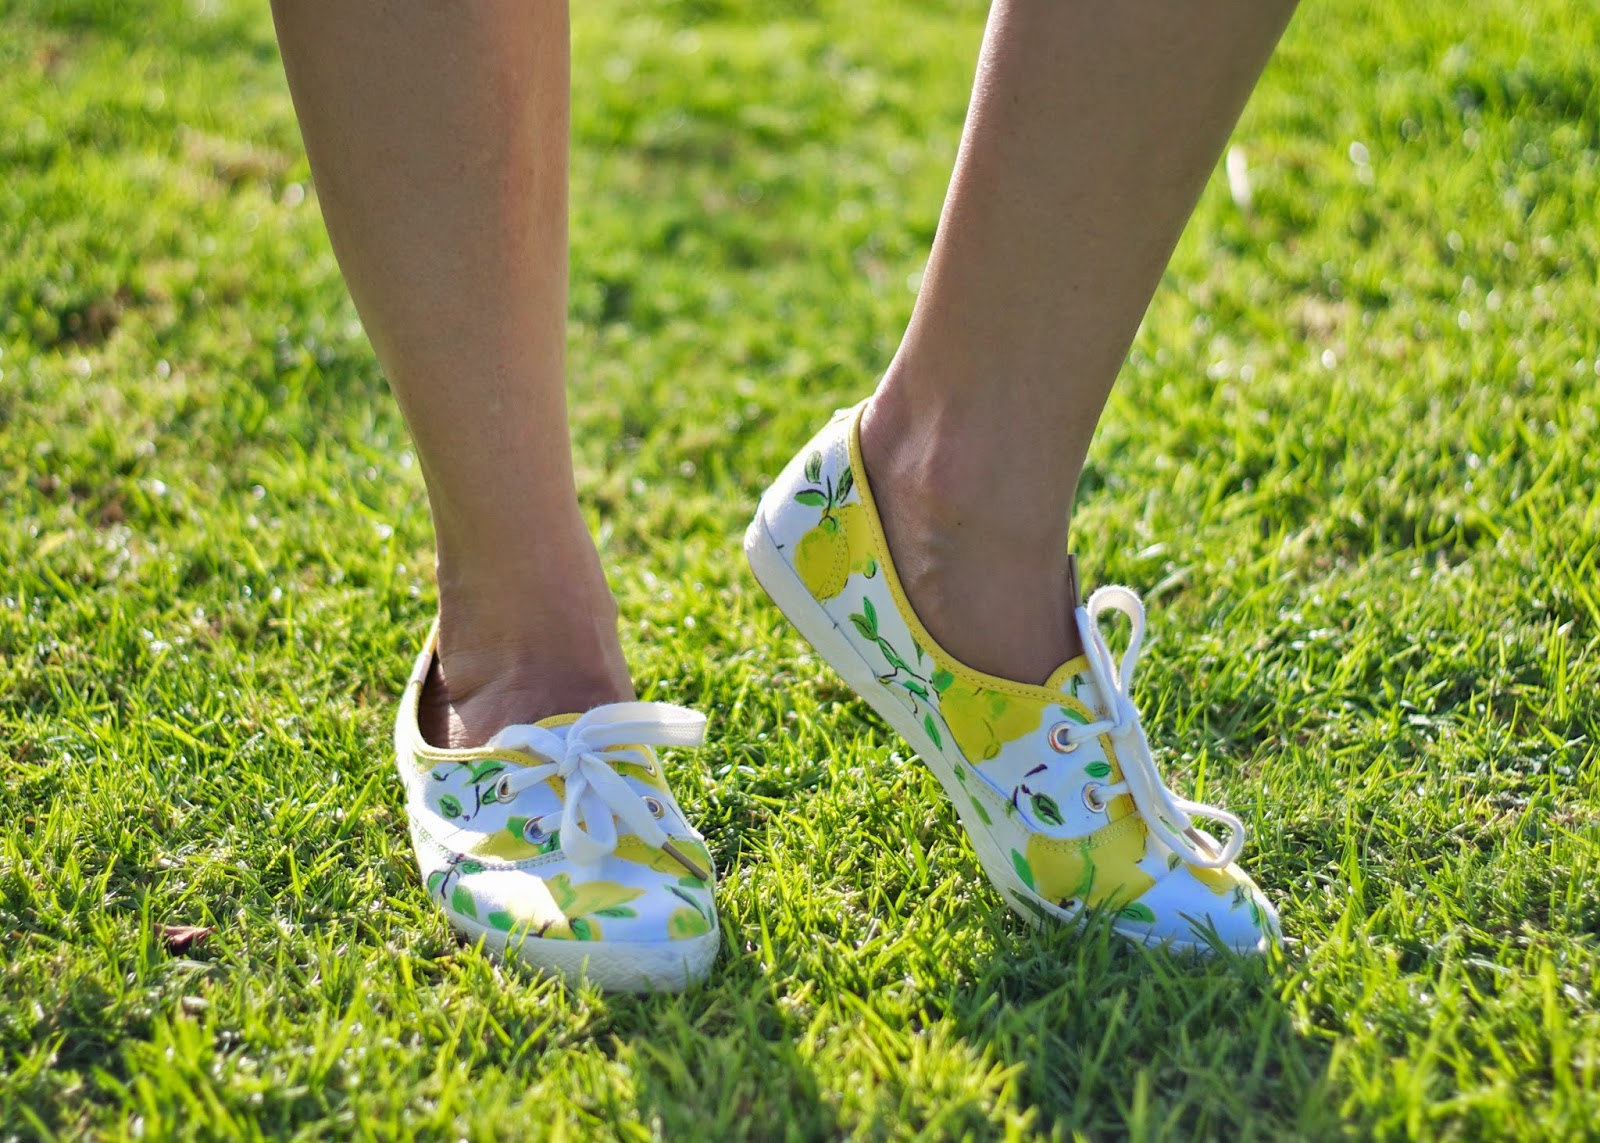 Kate Spade Keds with Lemon Print, Kate Spade Lemon Printed sneakers, cute sneakers by Kate Spade